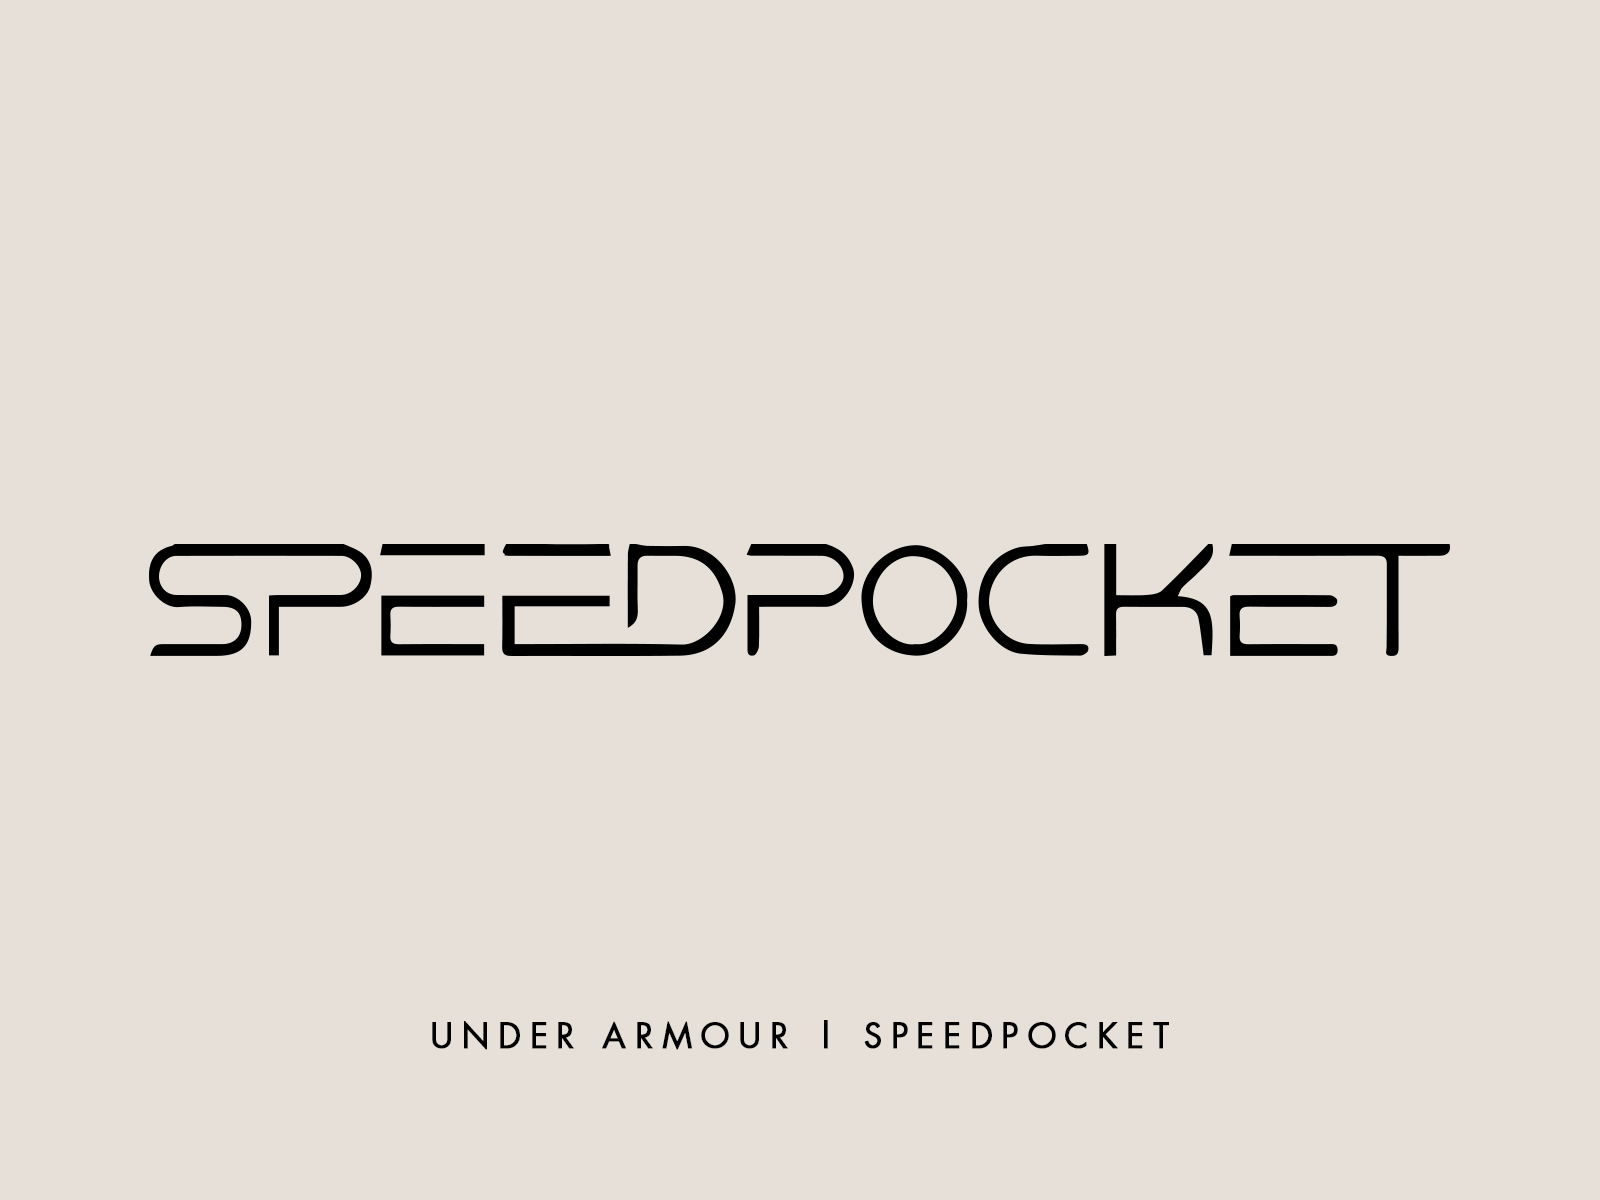 logo_Speedpocket.jpg